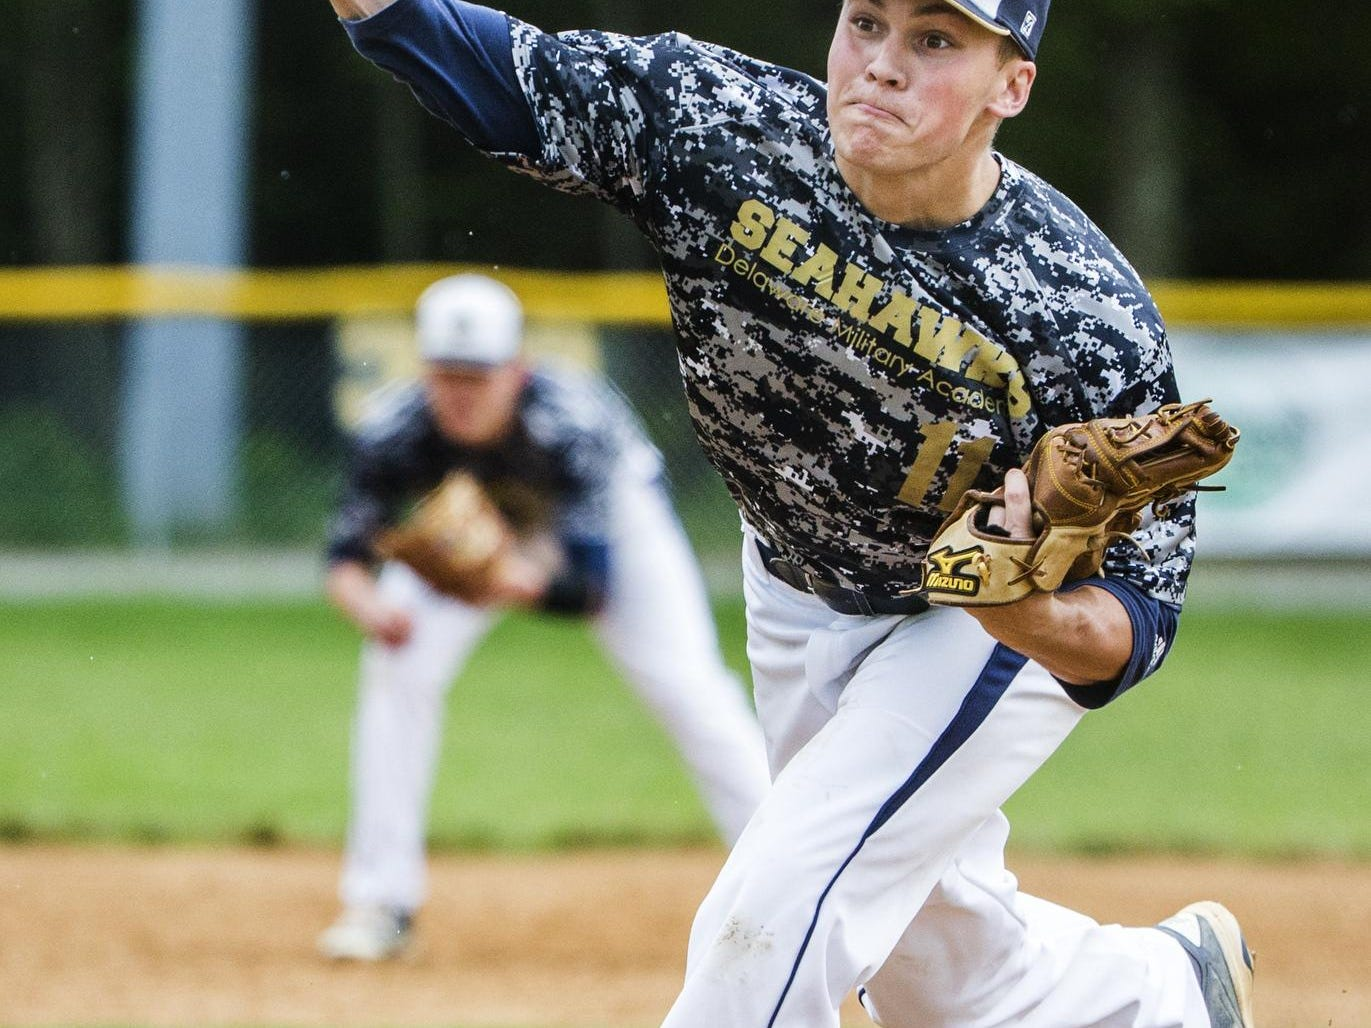 Delaware Military Academy's Matthew Danz delivers a pitch in Conrad's 1-0 win over Delaware Military Academy in Newark on Tuesday afternoon.